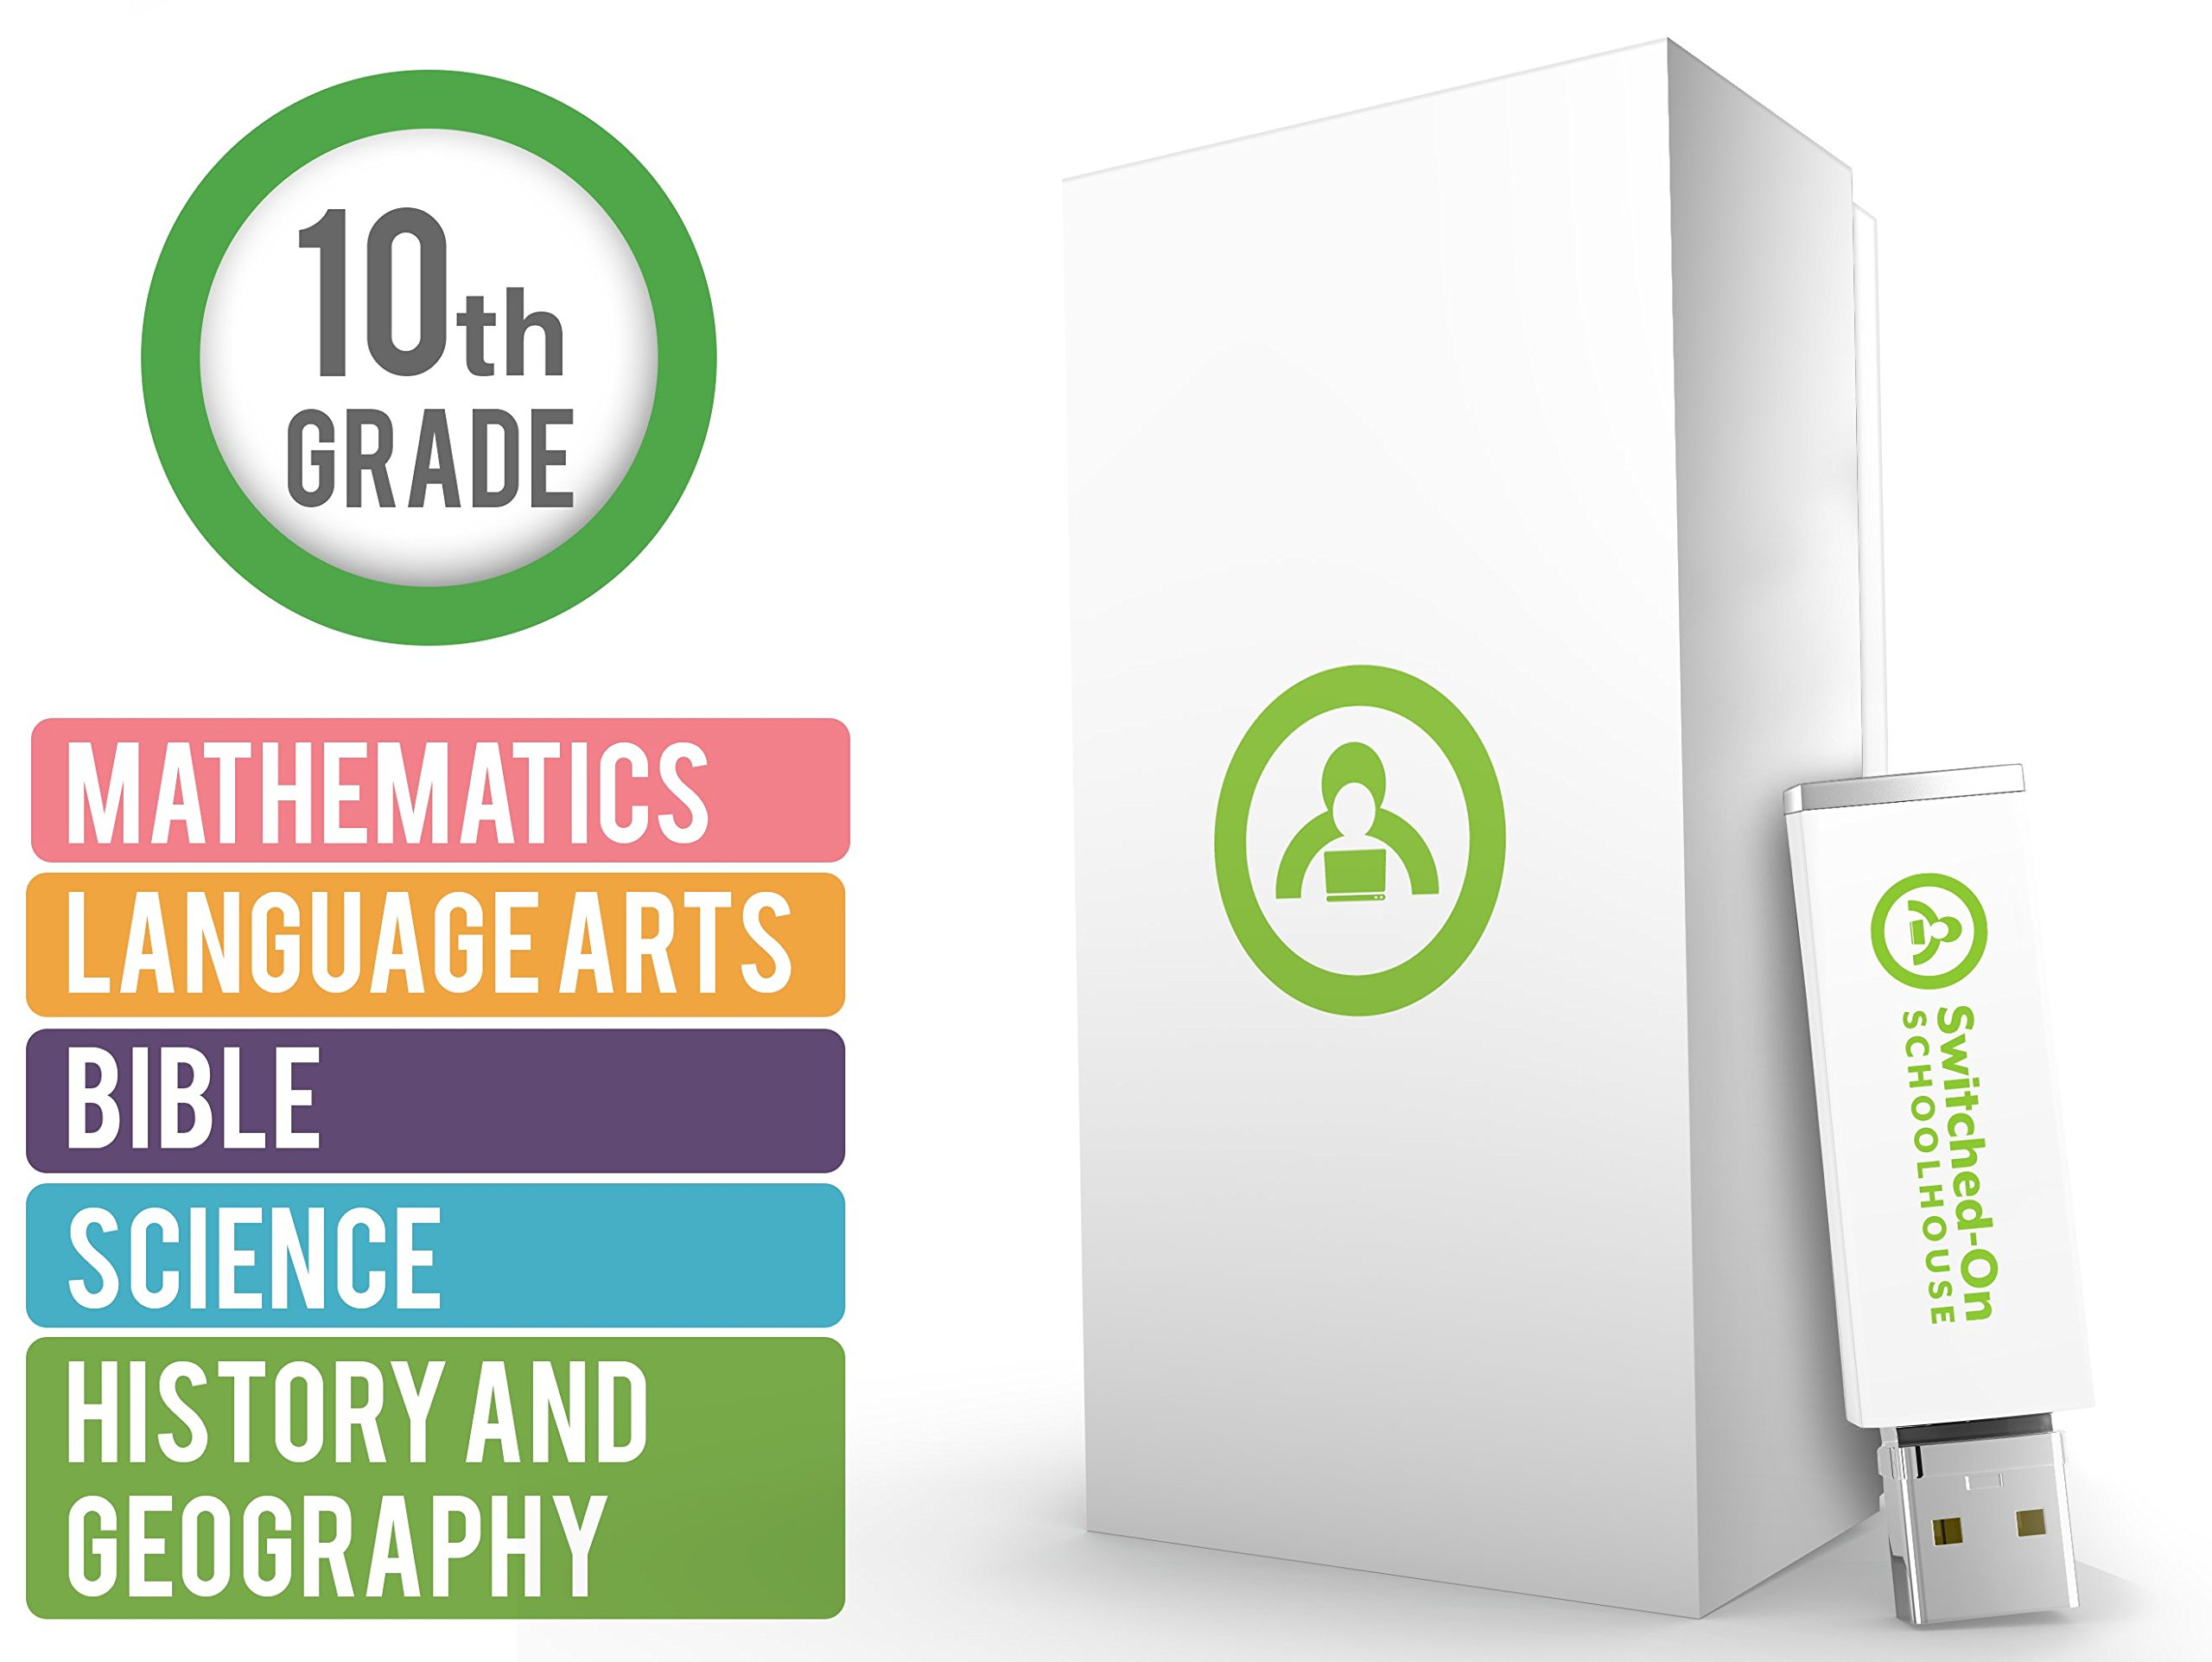 Switched on Schoolhouse, Grade 10, USB 5 Subject Set – Math, Language, Science, History, & Bible, 10th Grade Homeschool Curriculum by Alpha Omega